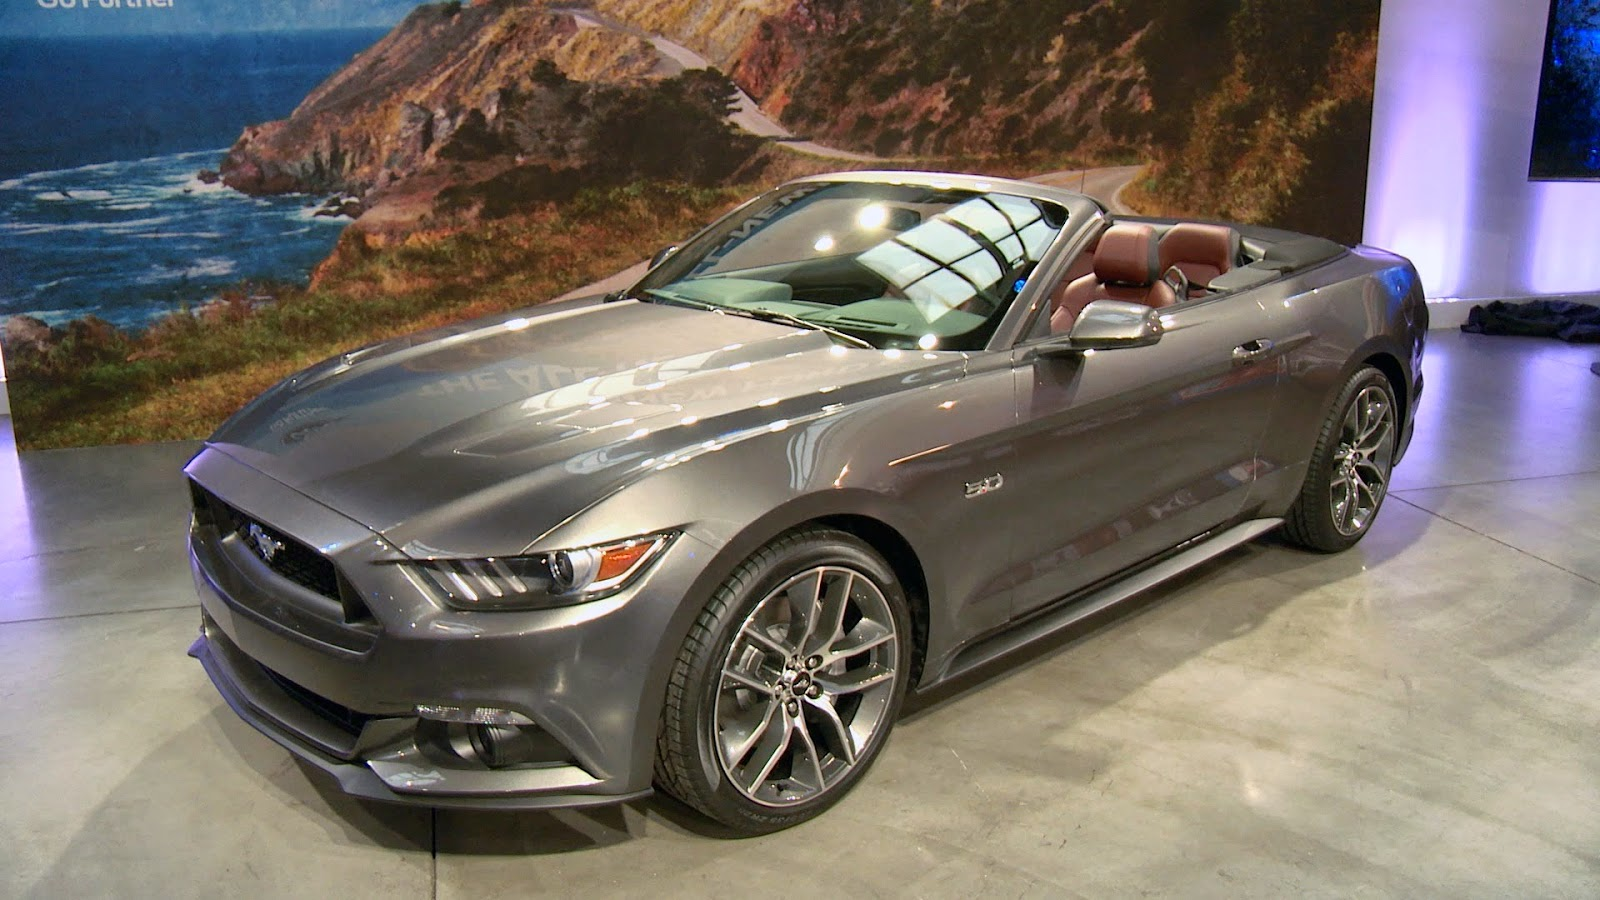 2017 Ford Mustang Ecoboost Premium >> 2015 Mustang GT Convertible Technical Review and price ...